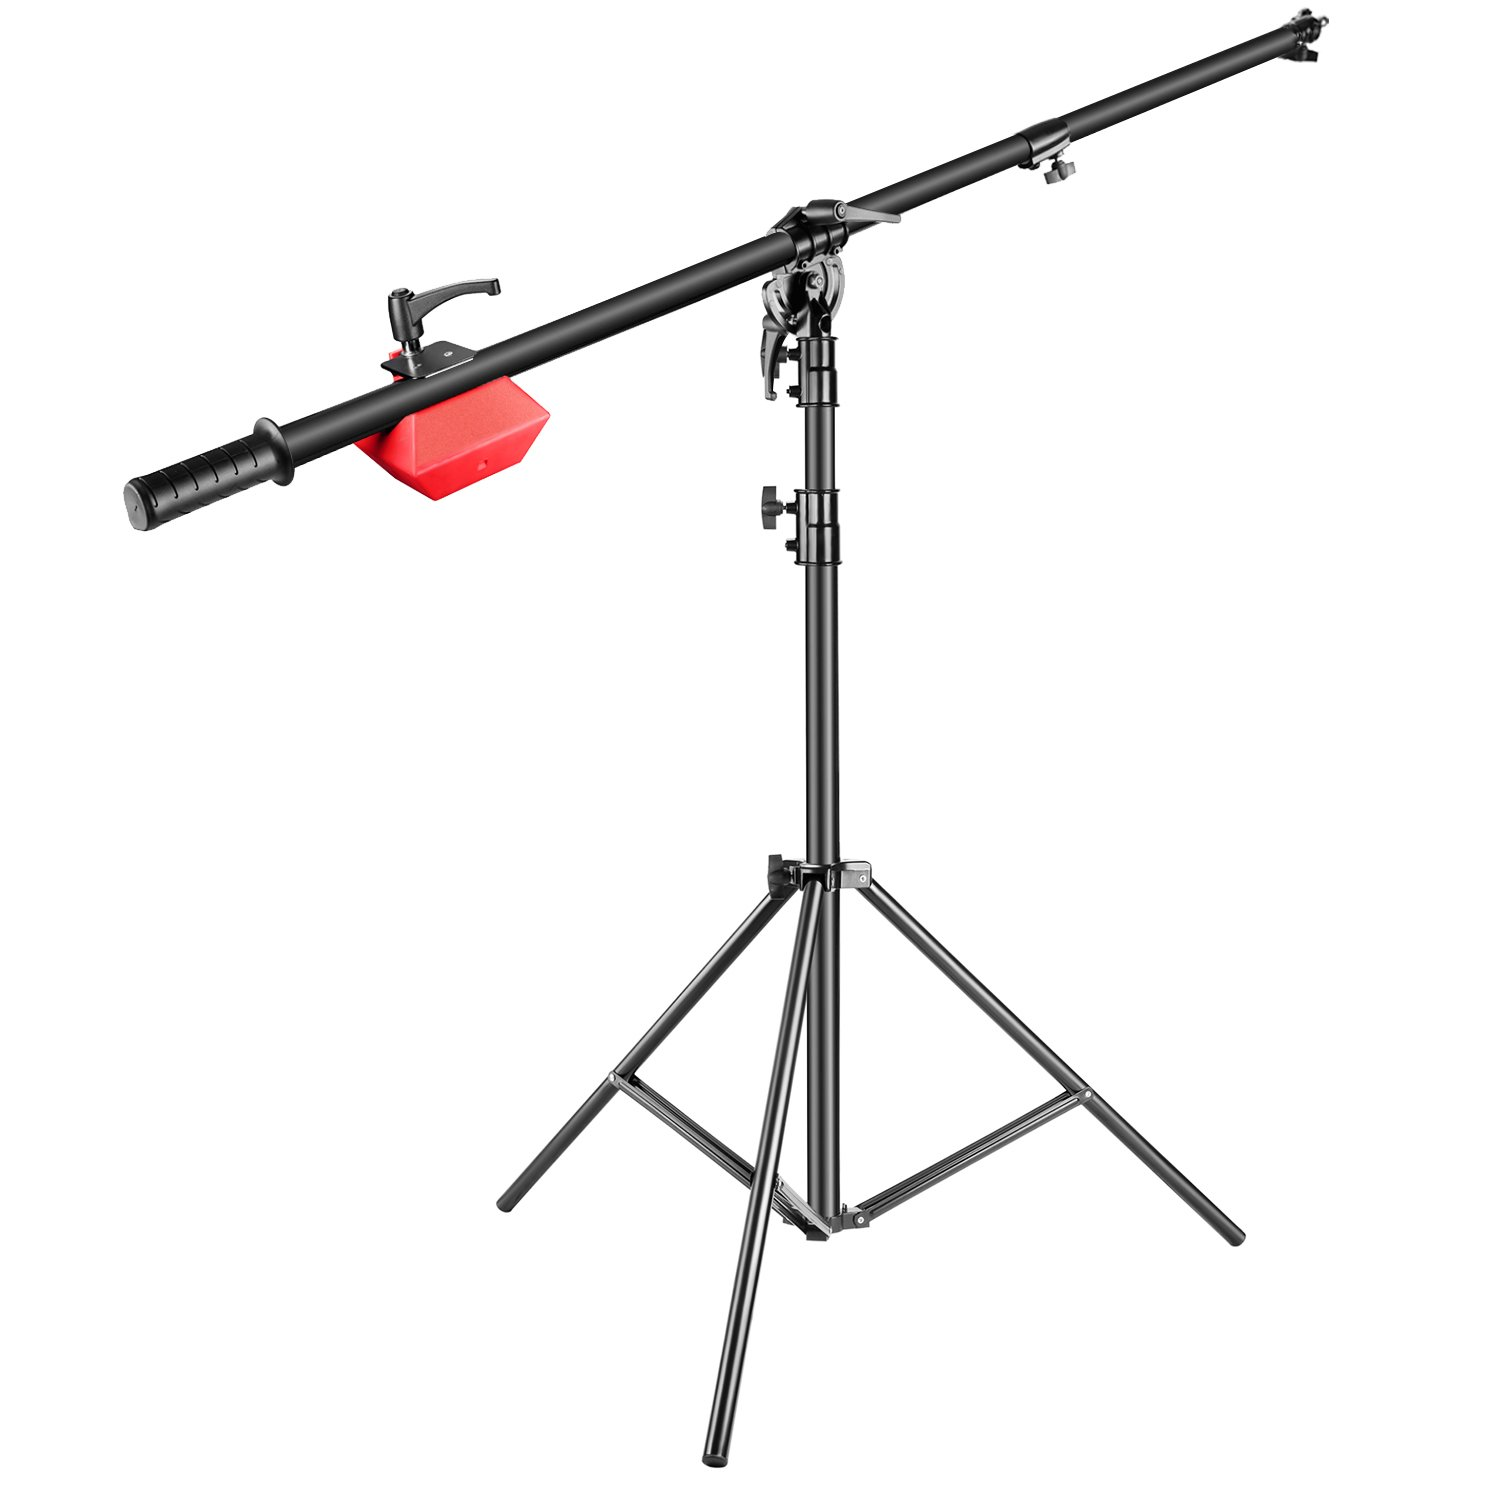 Sandbag for Supporting Umbrella Softbox Flash for Portrait Video Photography Neewer Photo Studio 2-in-1 Light Stand 48.4-151.5 inches Adjustable Height with 85-inch Boom Arm